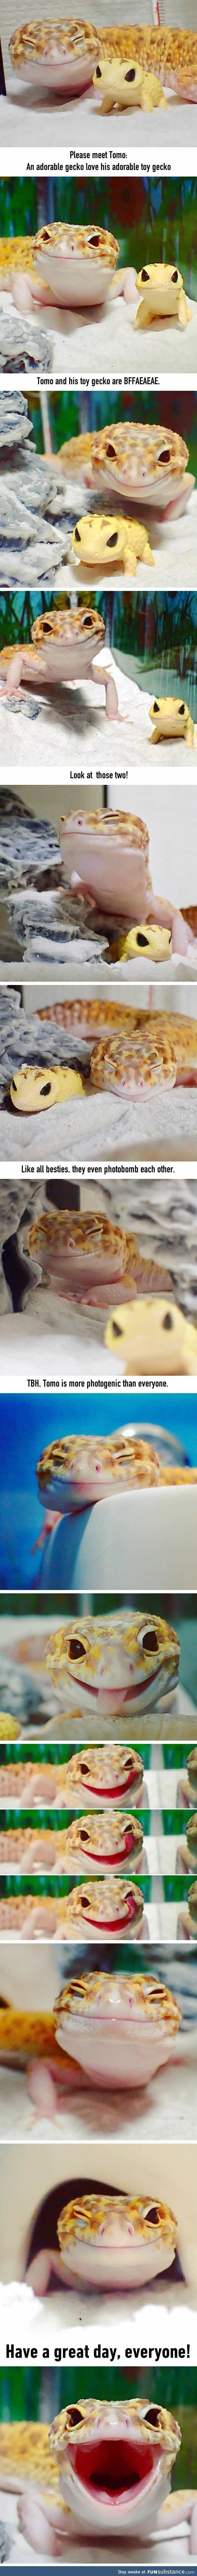 This Gecko Smiling With His Toy Gecko Is The Purest Thing You'll See Today -Actually really cute! 😘